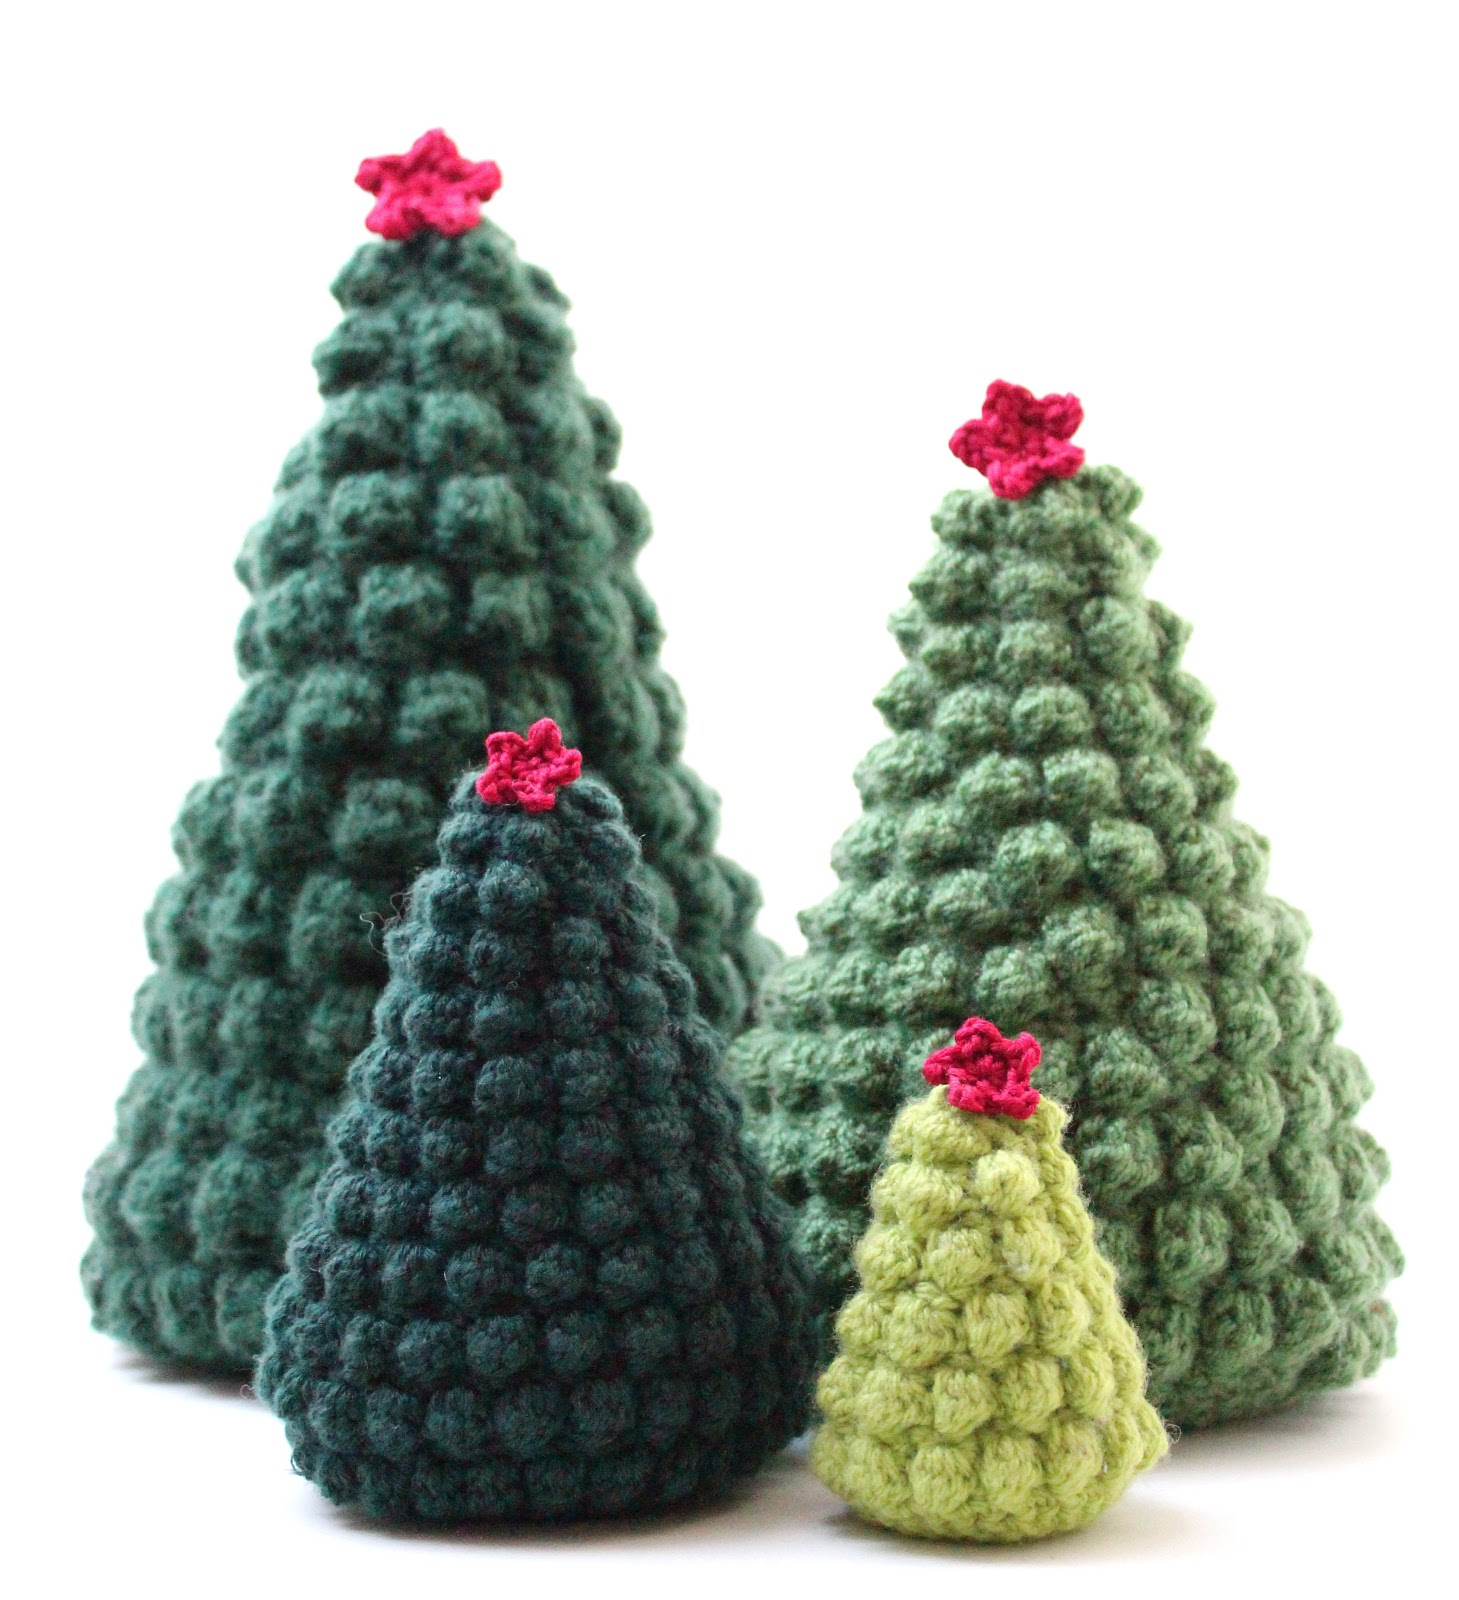 Free Crochet Patterns For Xmas Trees : According to Matt...: Creative Christmas: Crocheted Christmas Trees